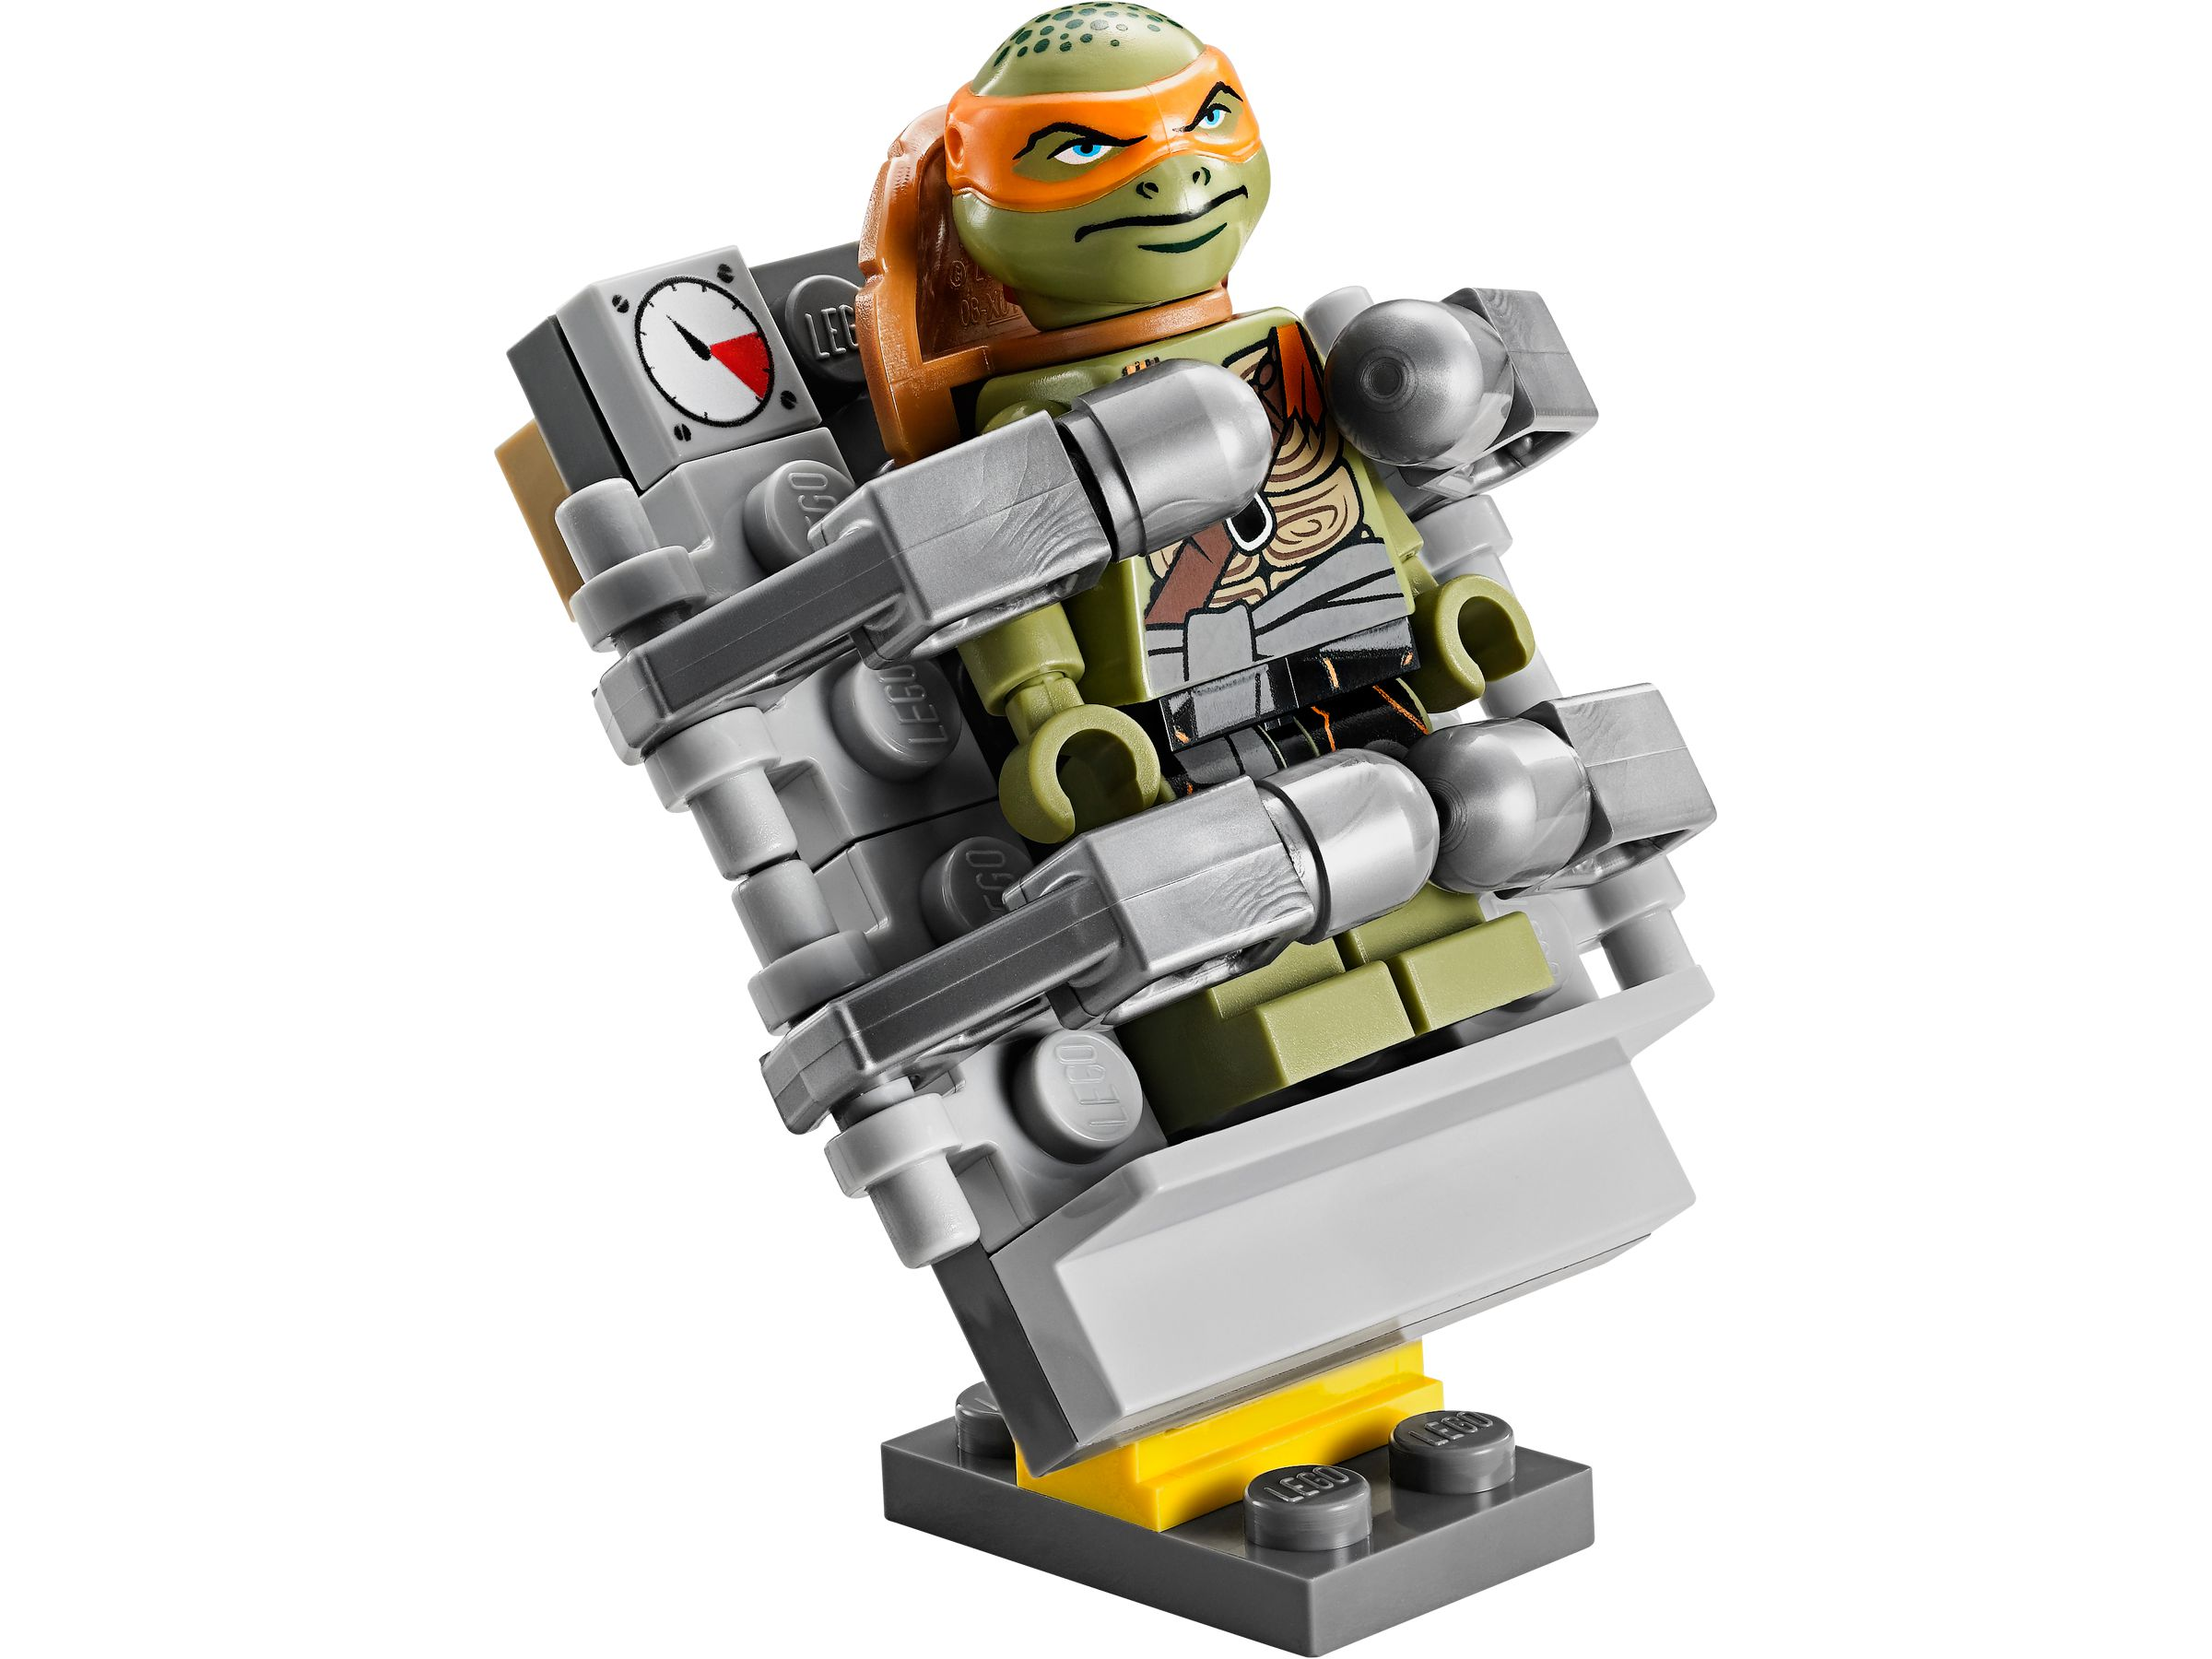 LEGO Teenage Mutant Ninja Turtles 79115 Turtle Van LEGO_79115_alt7.jpg